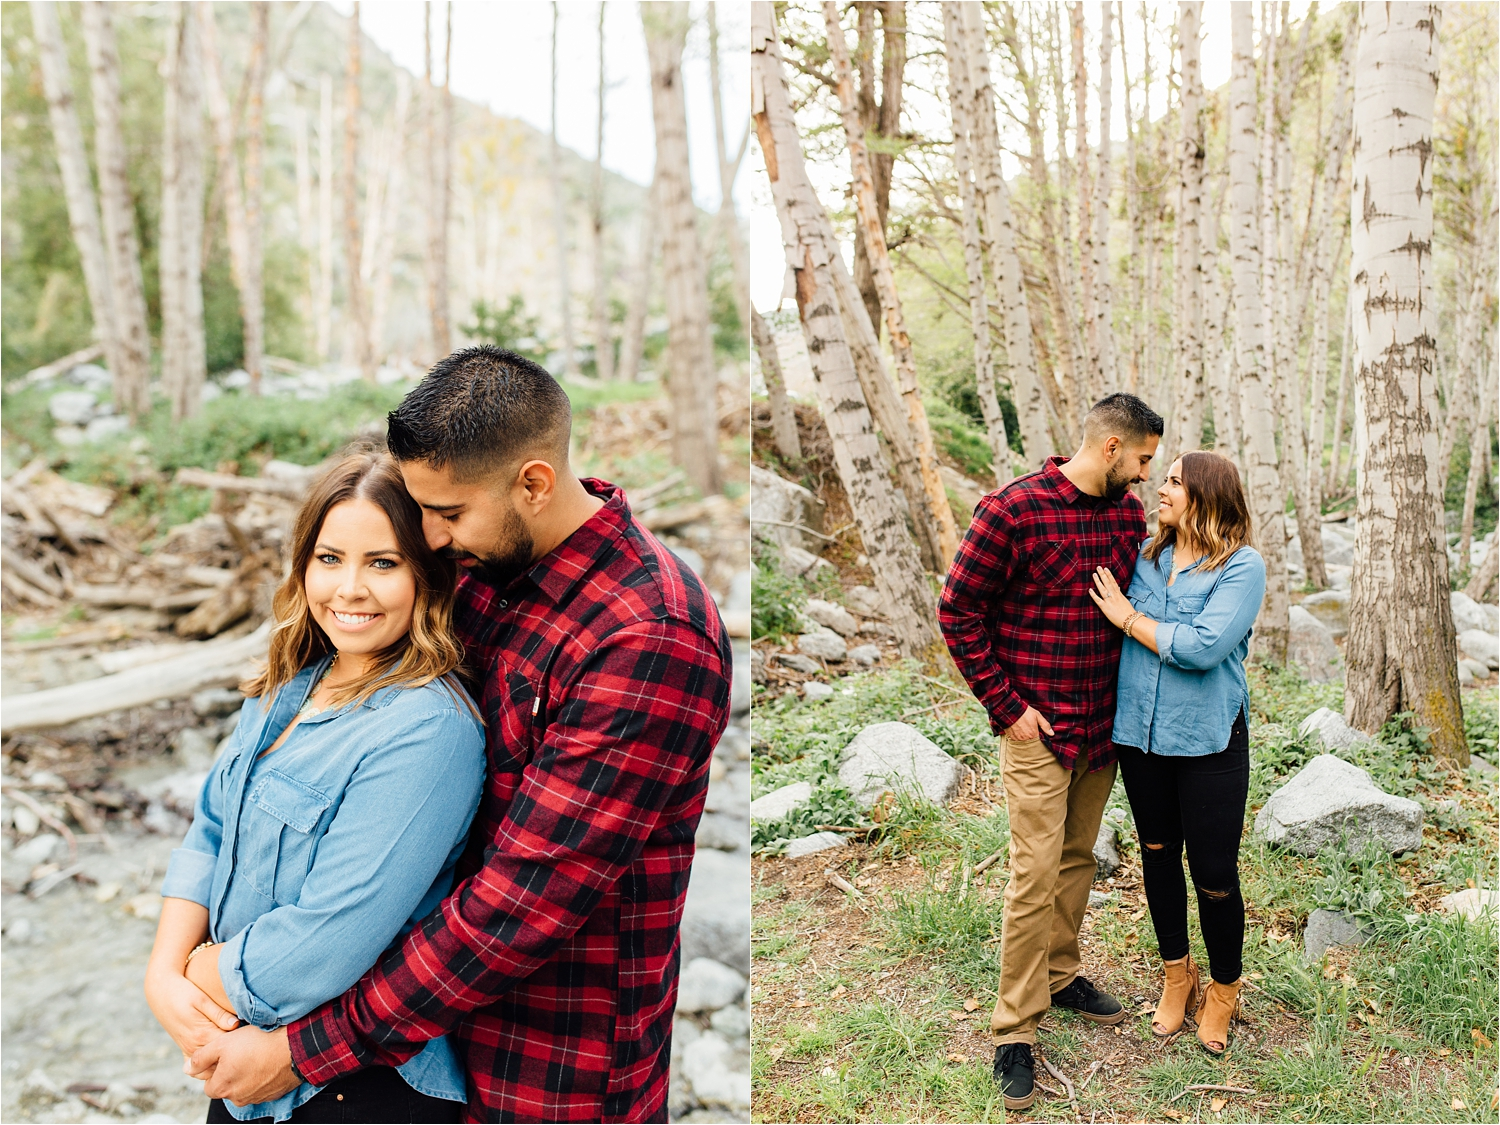 Mountain Wedding and Engagement Photographer - http://brittneyhannonphotography.com